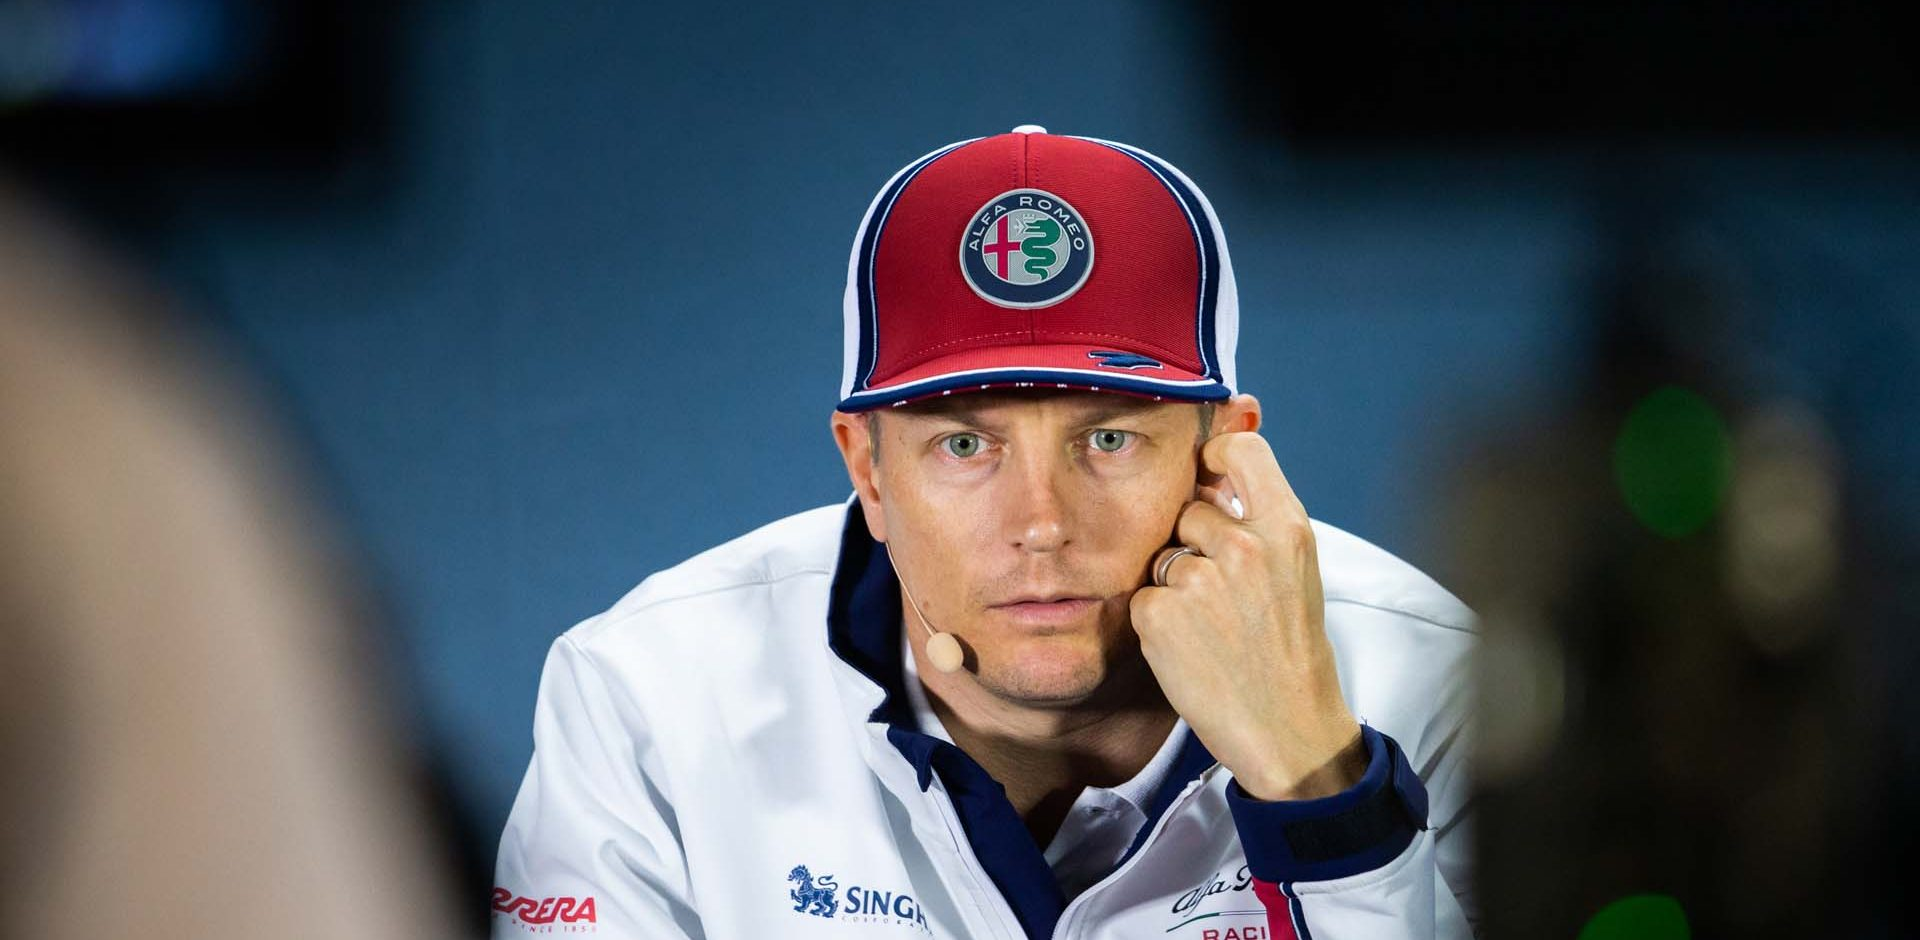 RAIKKONEN Kimi Räikkönen (fin), Alfa Romeo Racing C38, portrait press conference during the 2019 Formula One World Championship, Russia Grand Prix from September 26 to 29 in Sotchi, Russia - Photo Antonin Vincent / DPPI